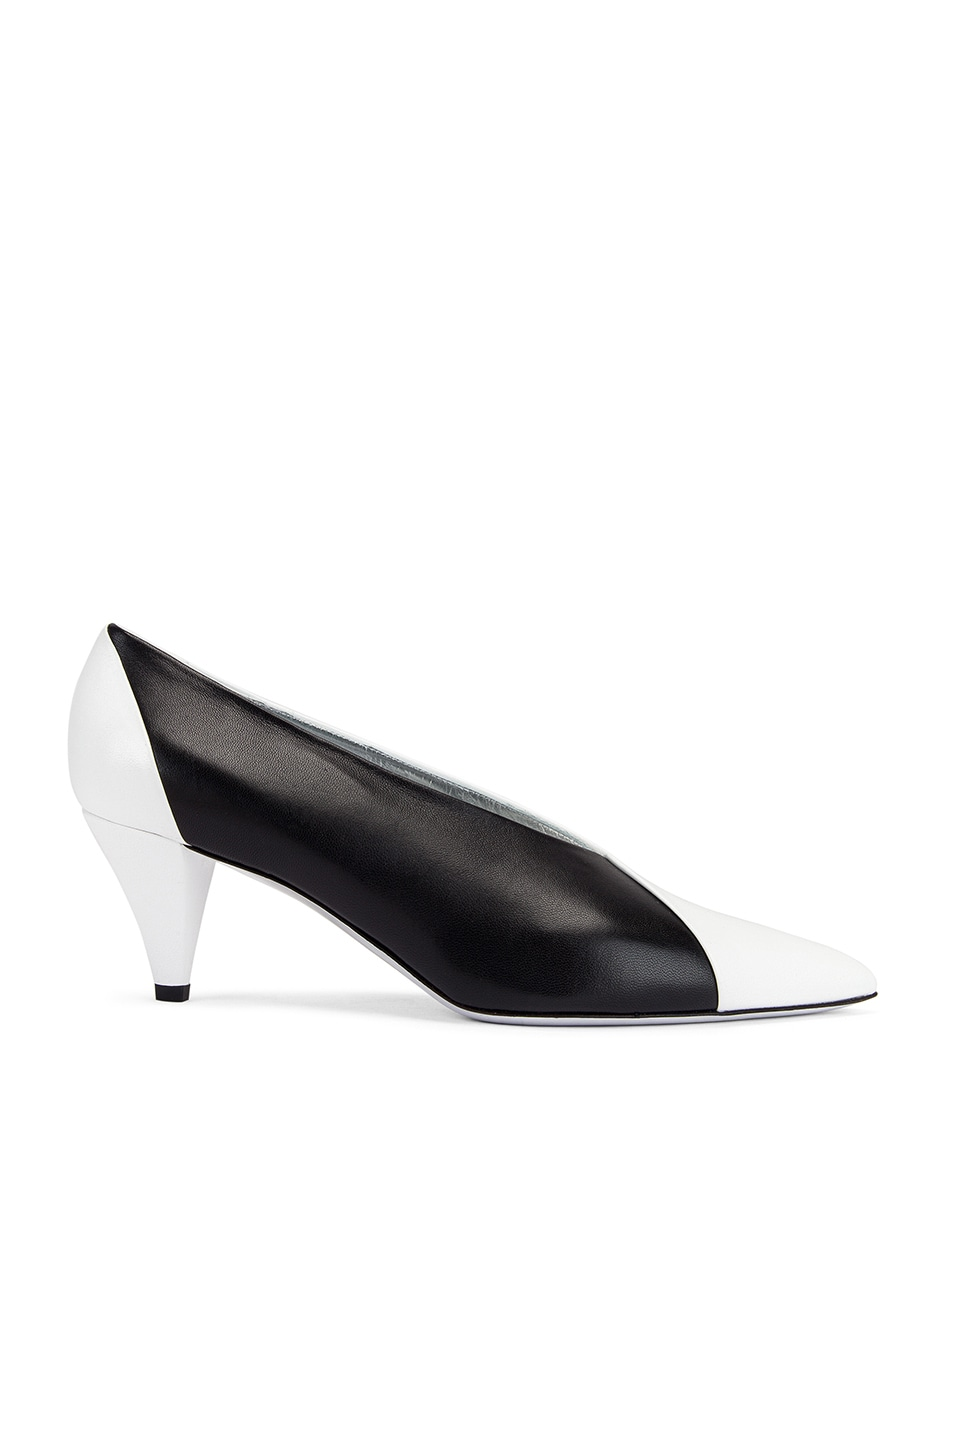 Image 1 of Givenchy Soft Two Tone Heels in Black & White